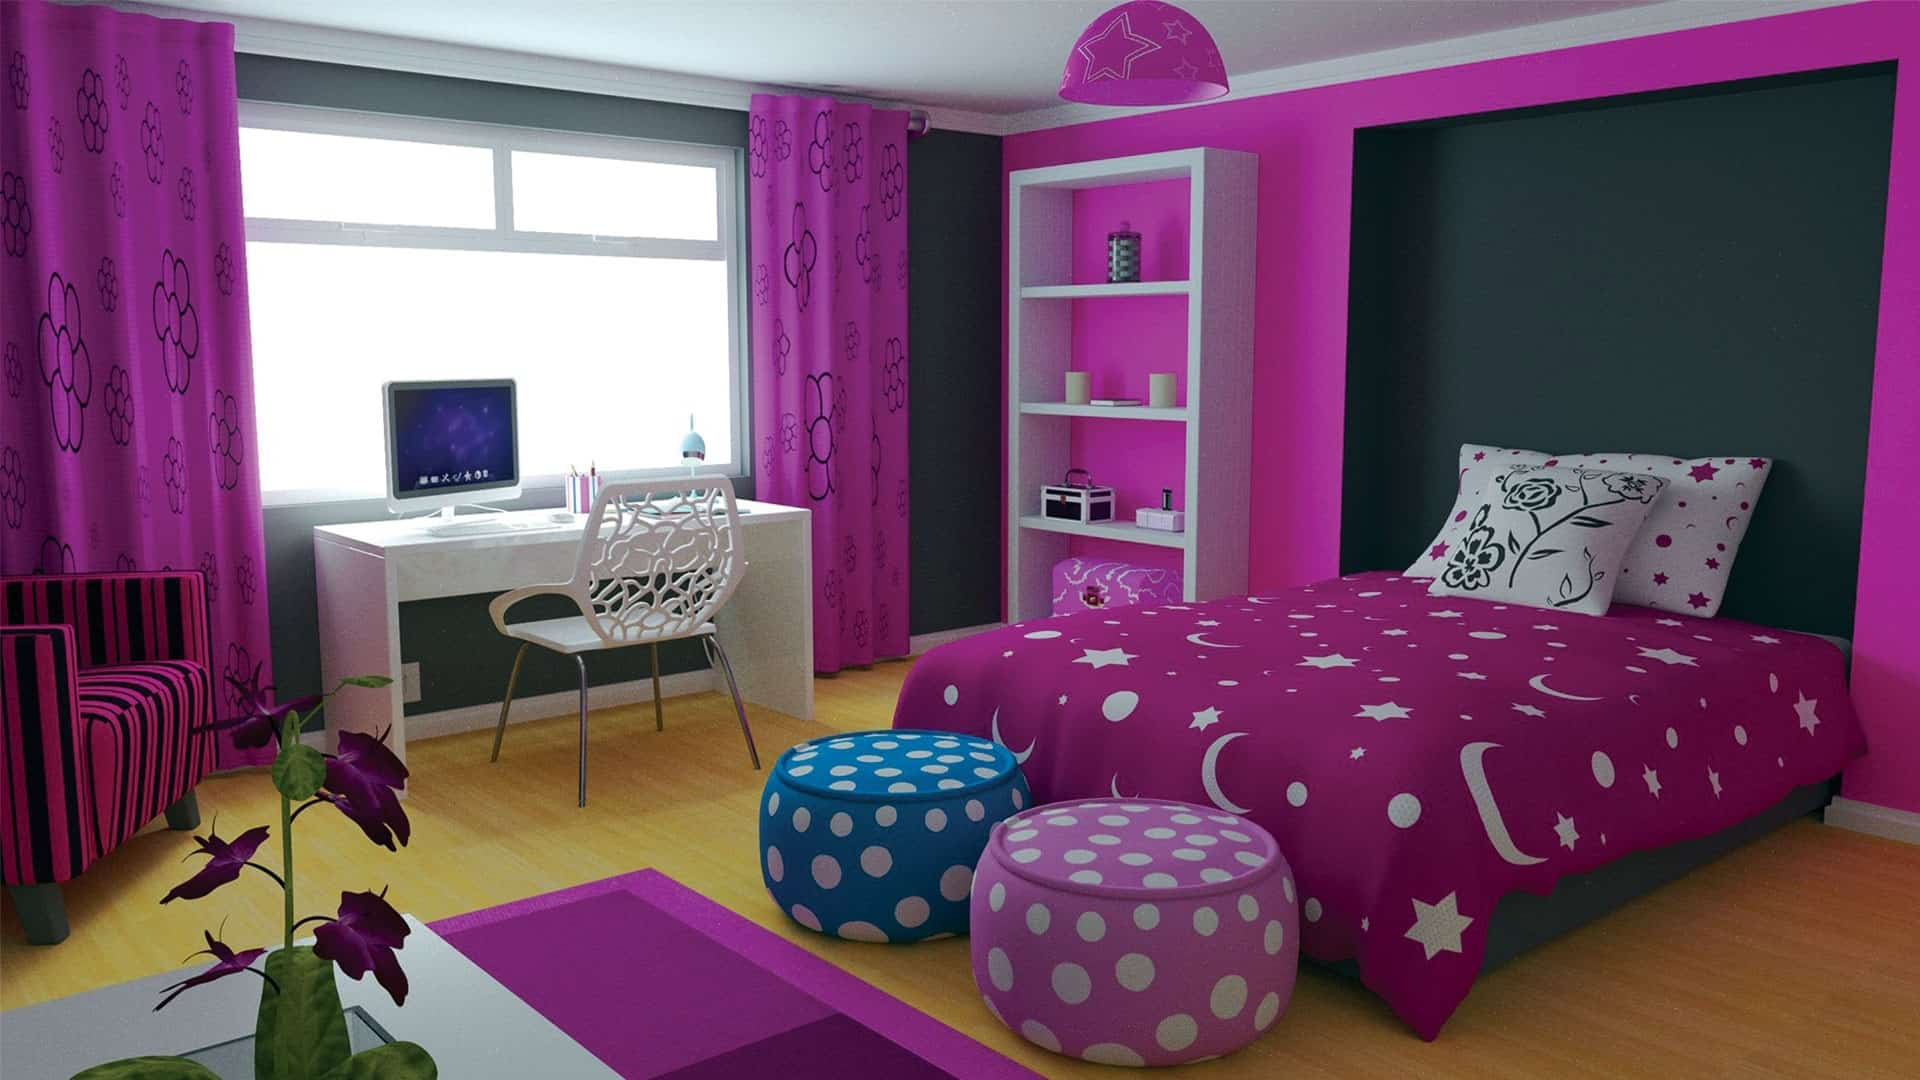 Bedroom Decorating Ideas Purple Walls home decor trends 2017: purple teen room